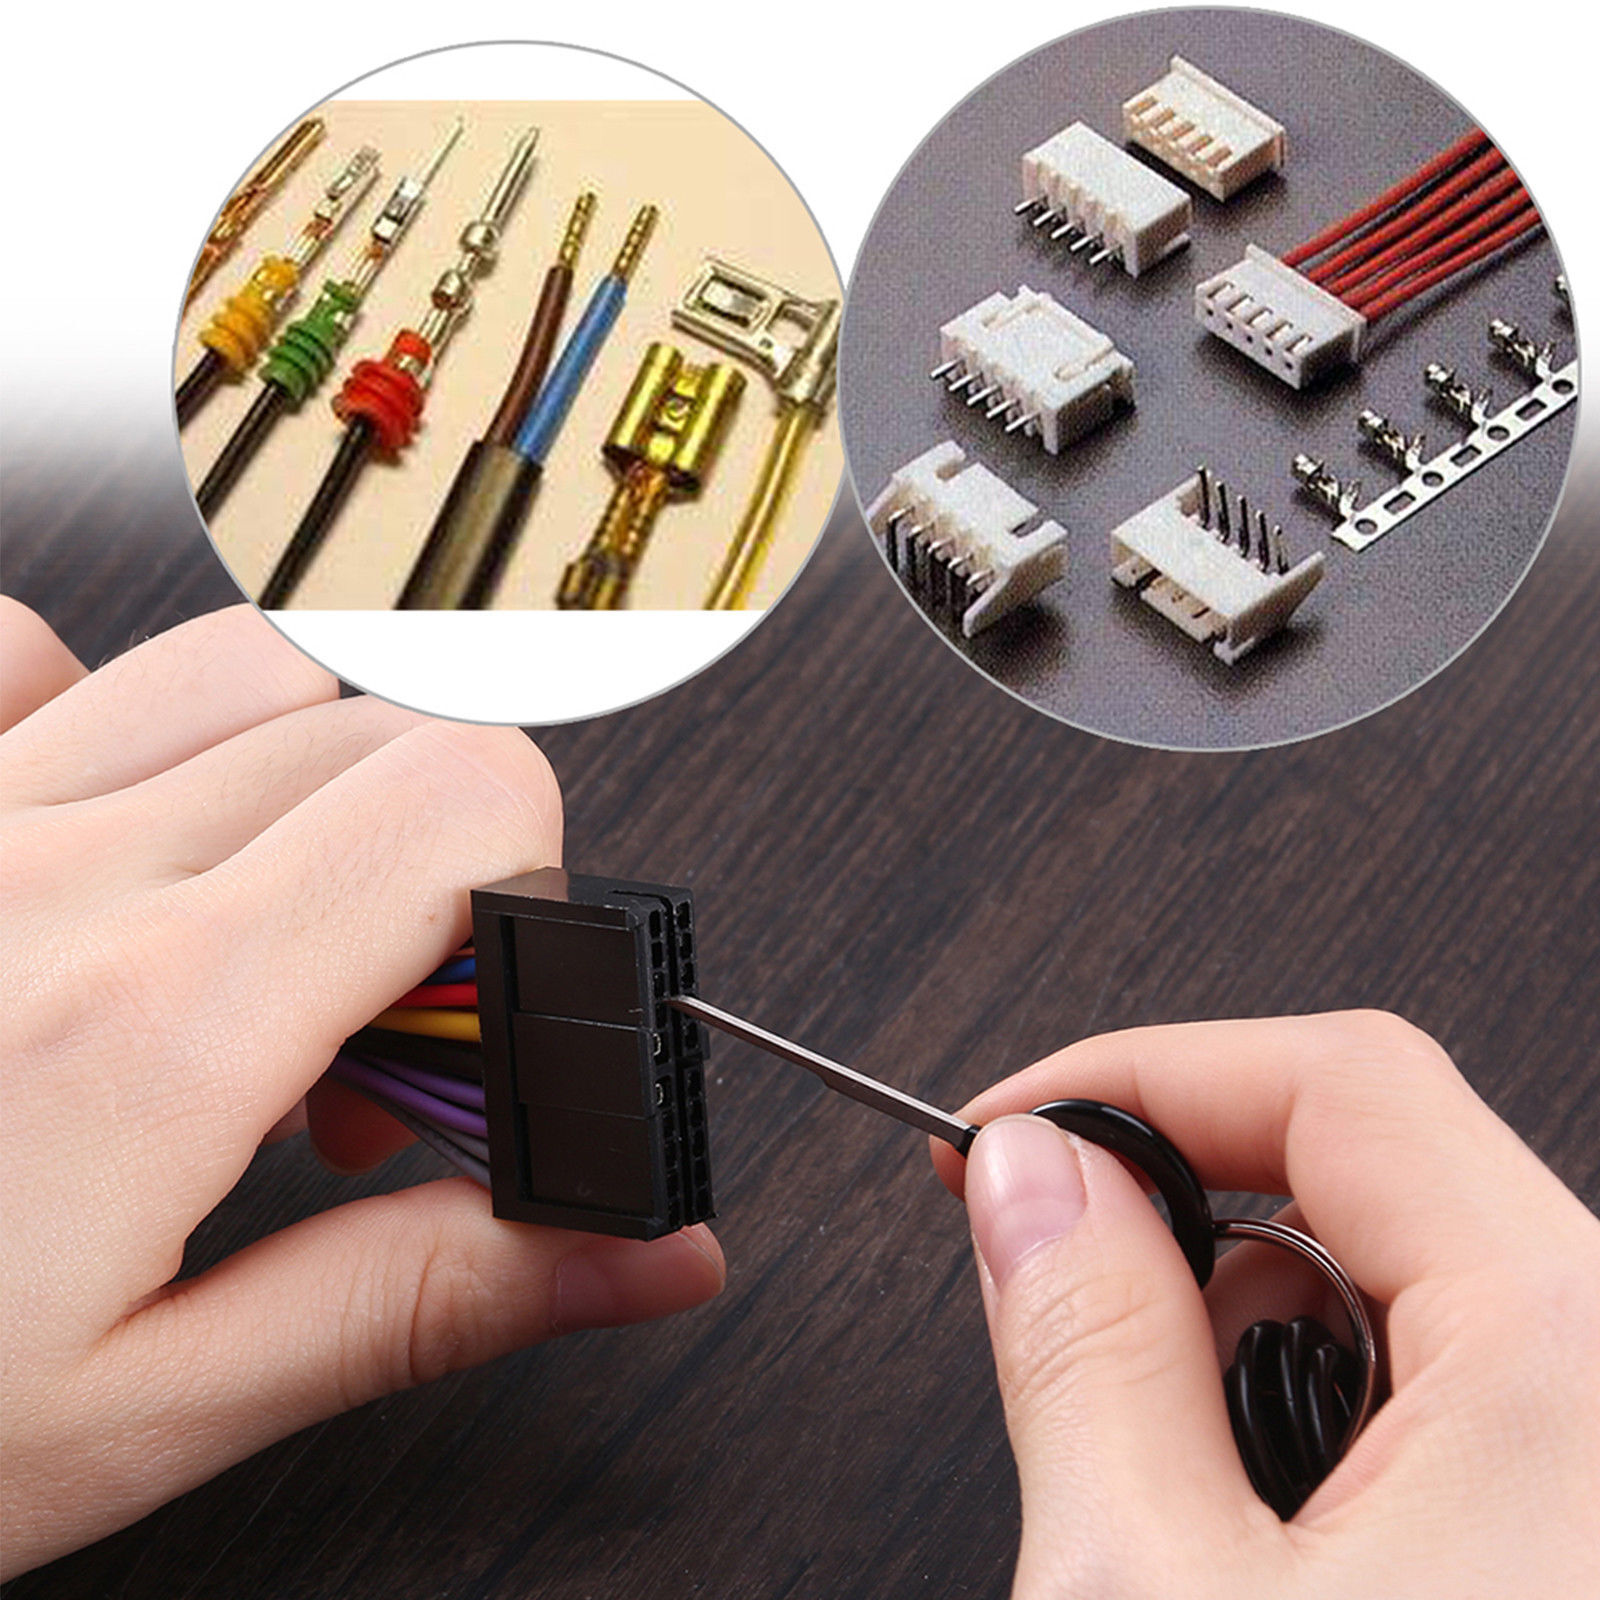 18x Car Wire Harness Plug Terminal Extraction Pick Connector Pin Removing Wires From Remove Tool Set